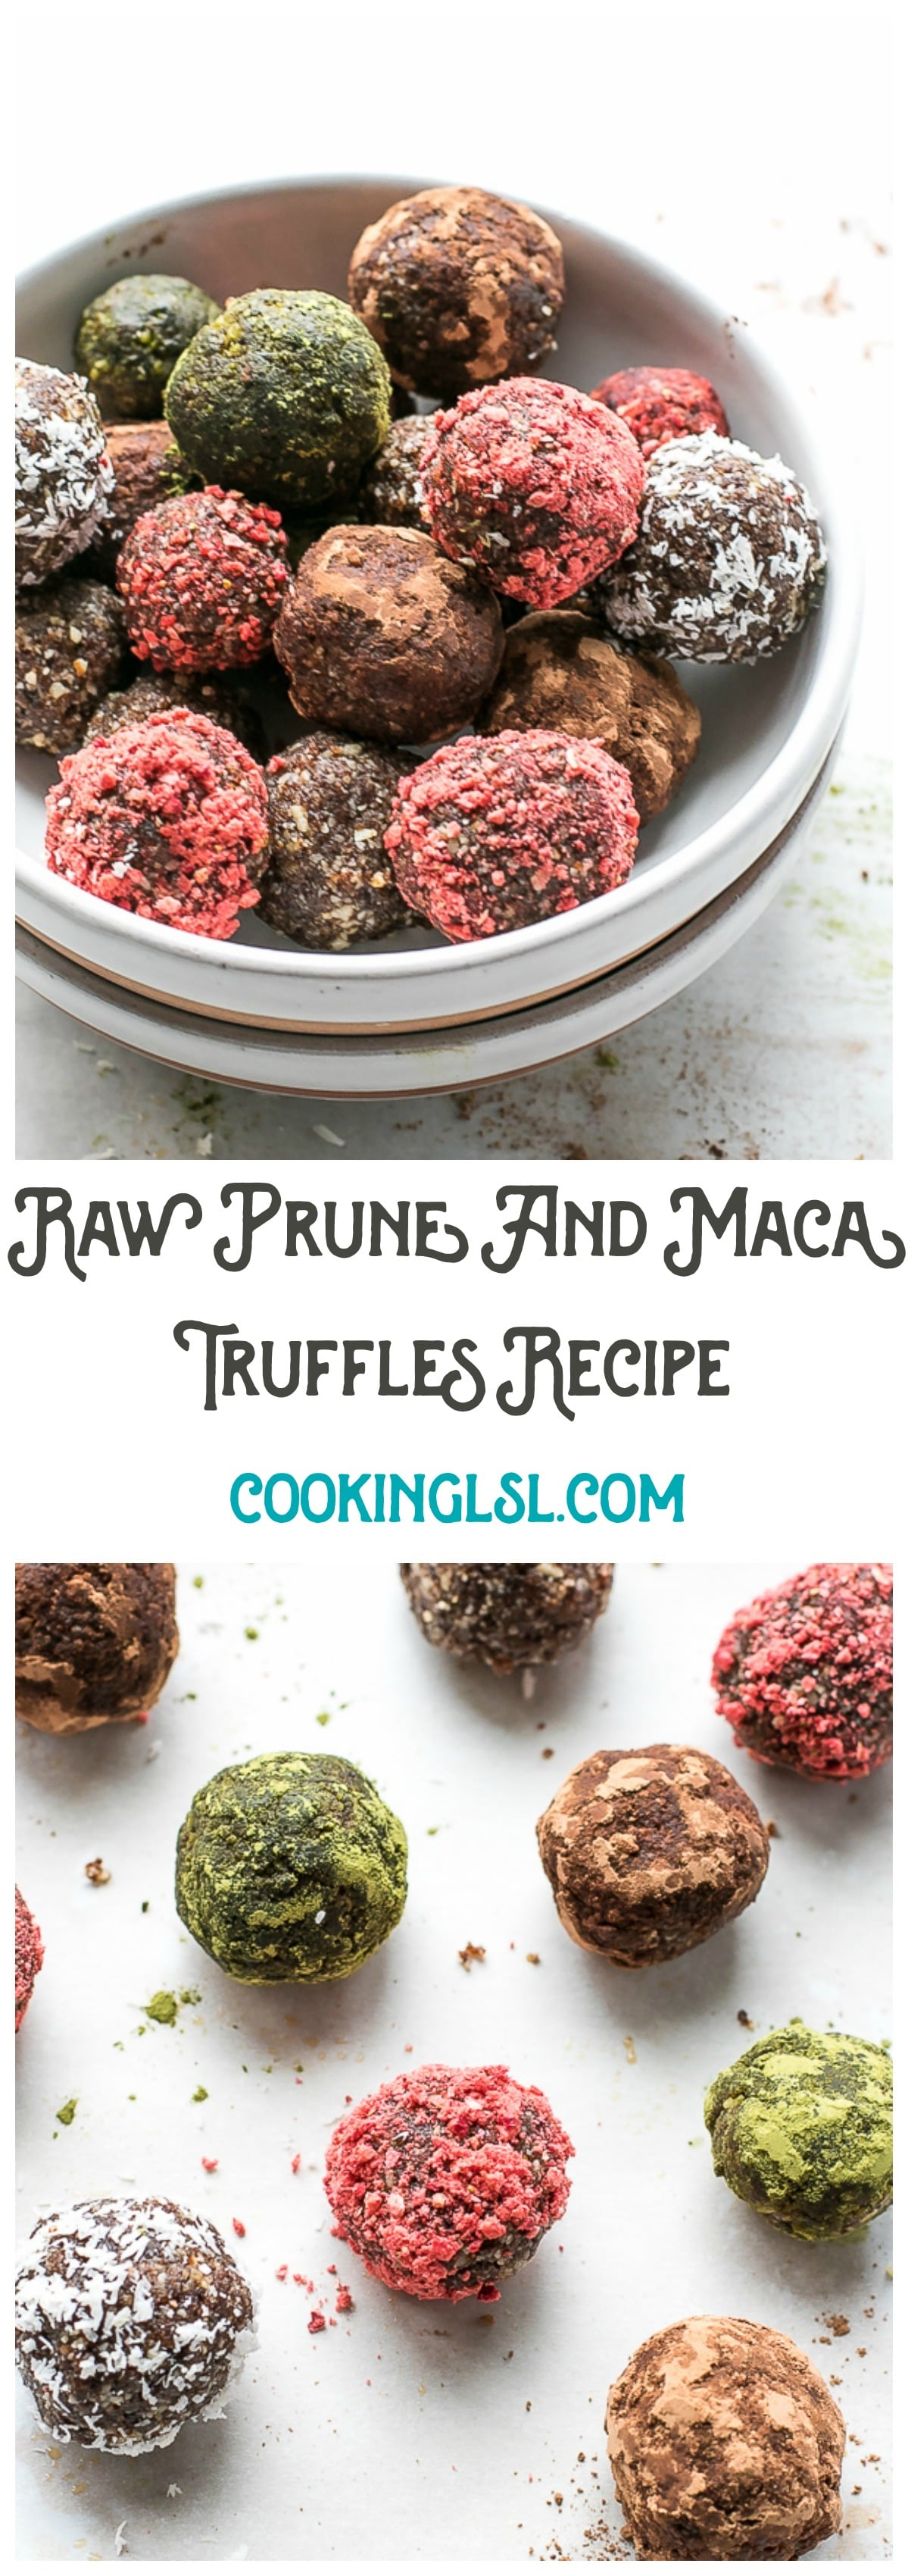 Raw Prune And Maca Truffles Recipe - naturally sweetened with prunes and maple syrup, these truffles are packed with nutritious ingredients, simple to make and also lightened up.